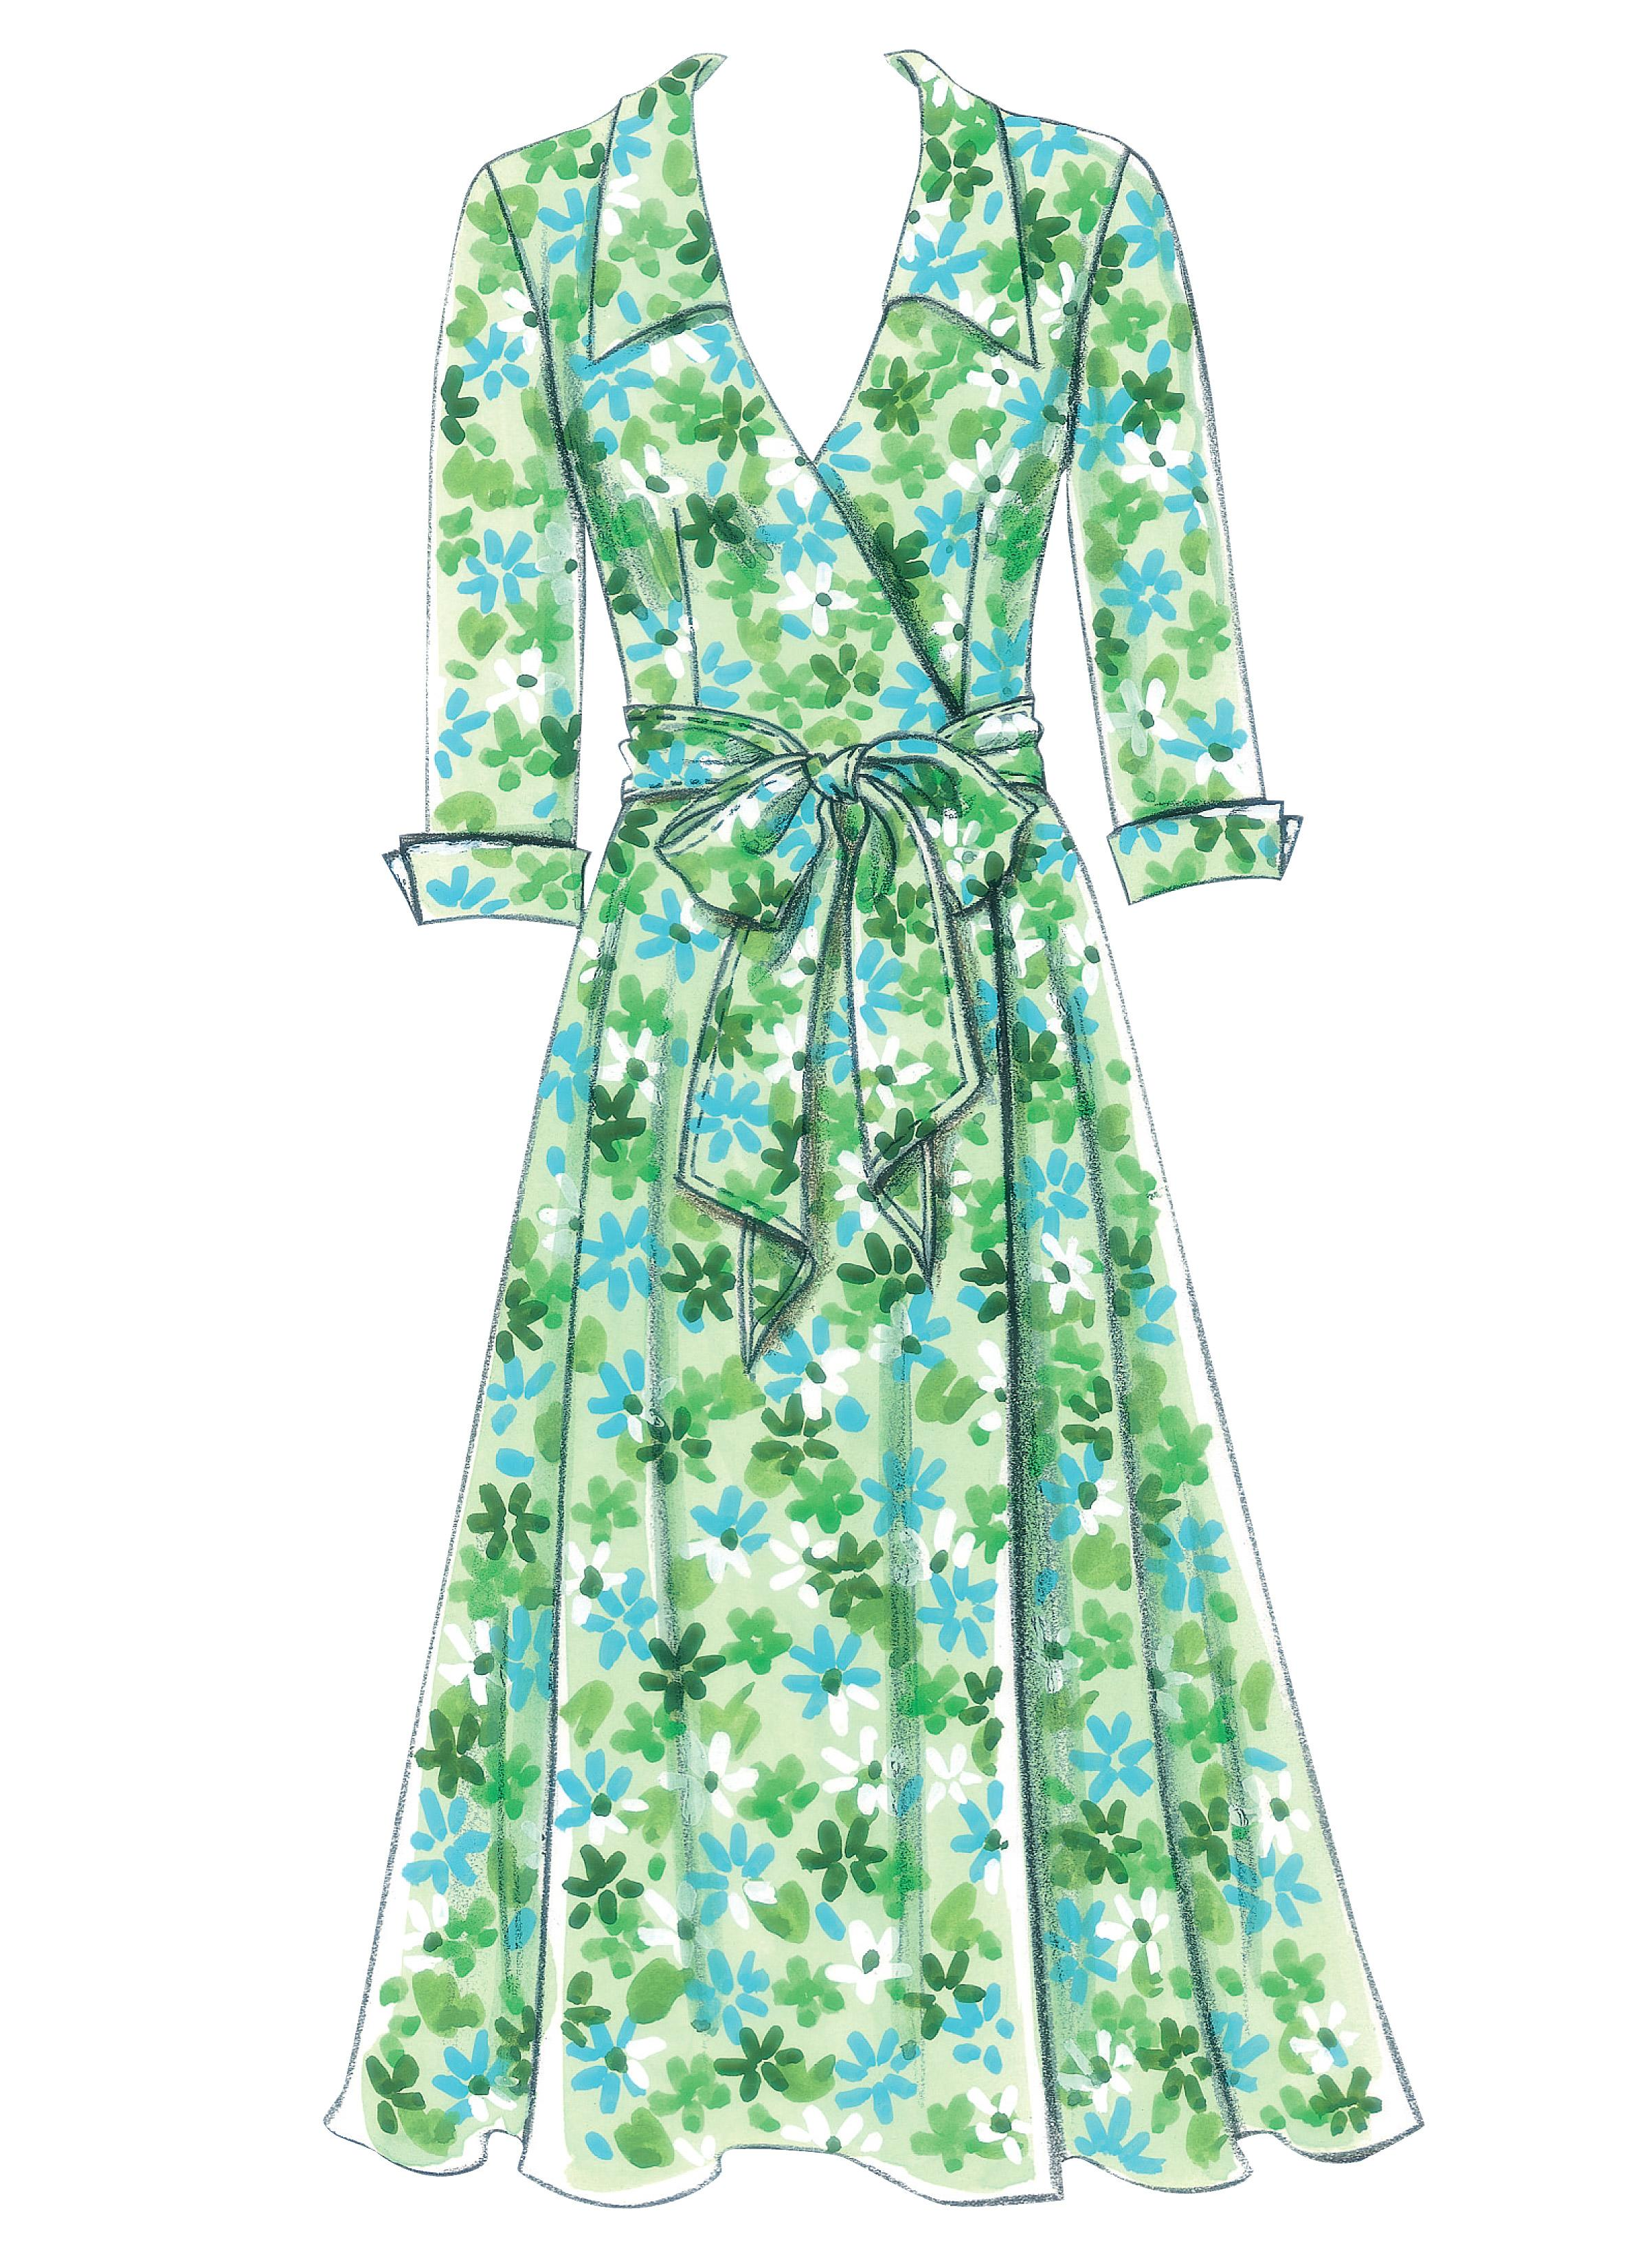 Butterick B5030 Misses' Dress, Belt and Sash